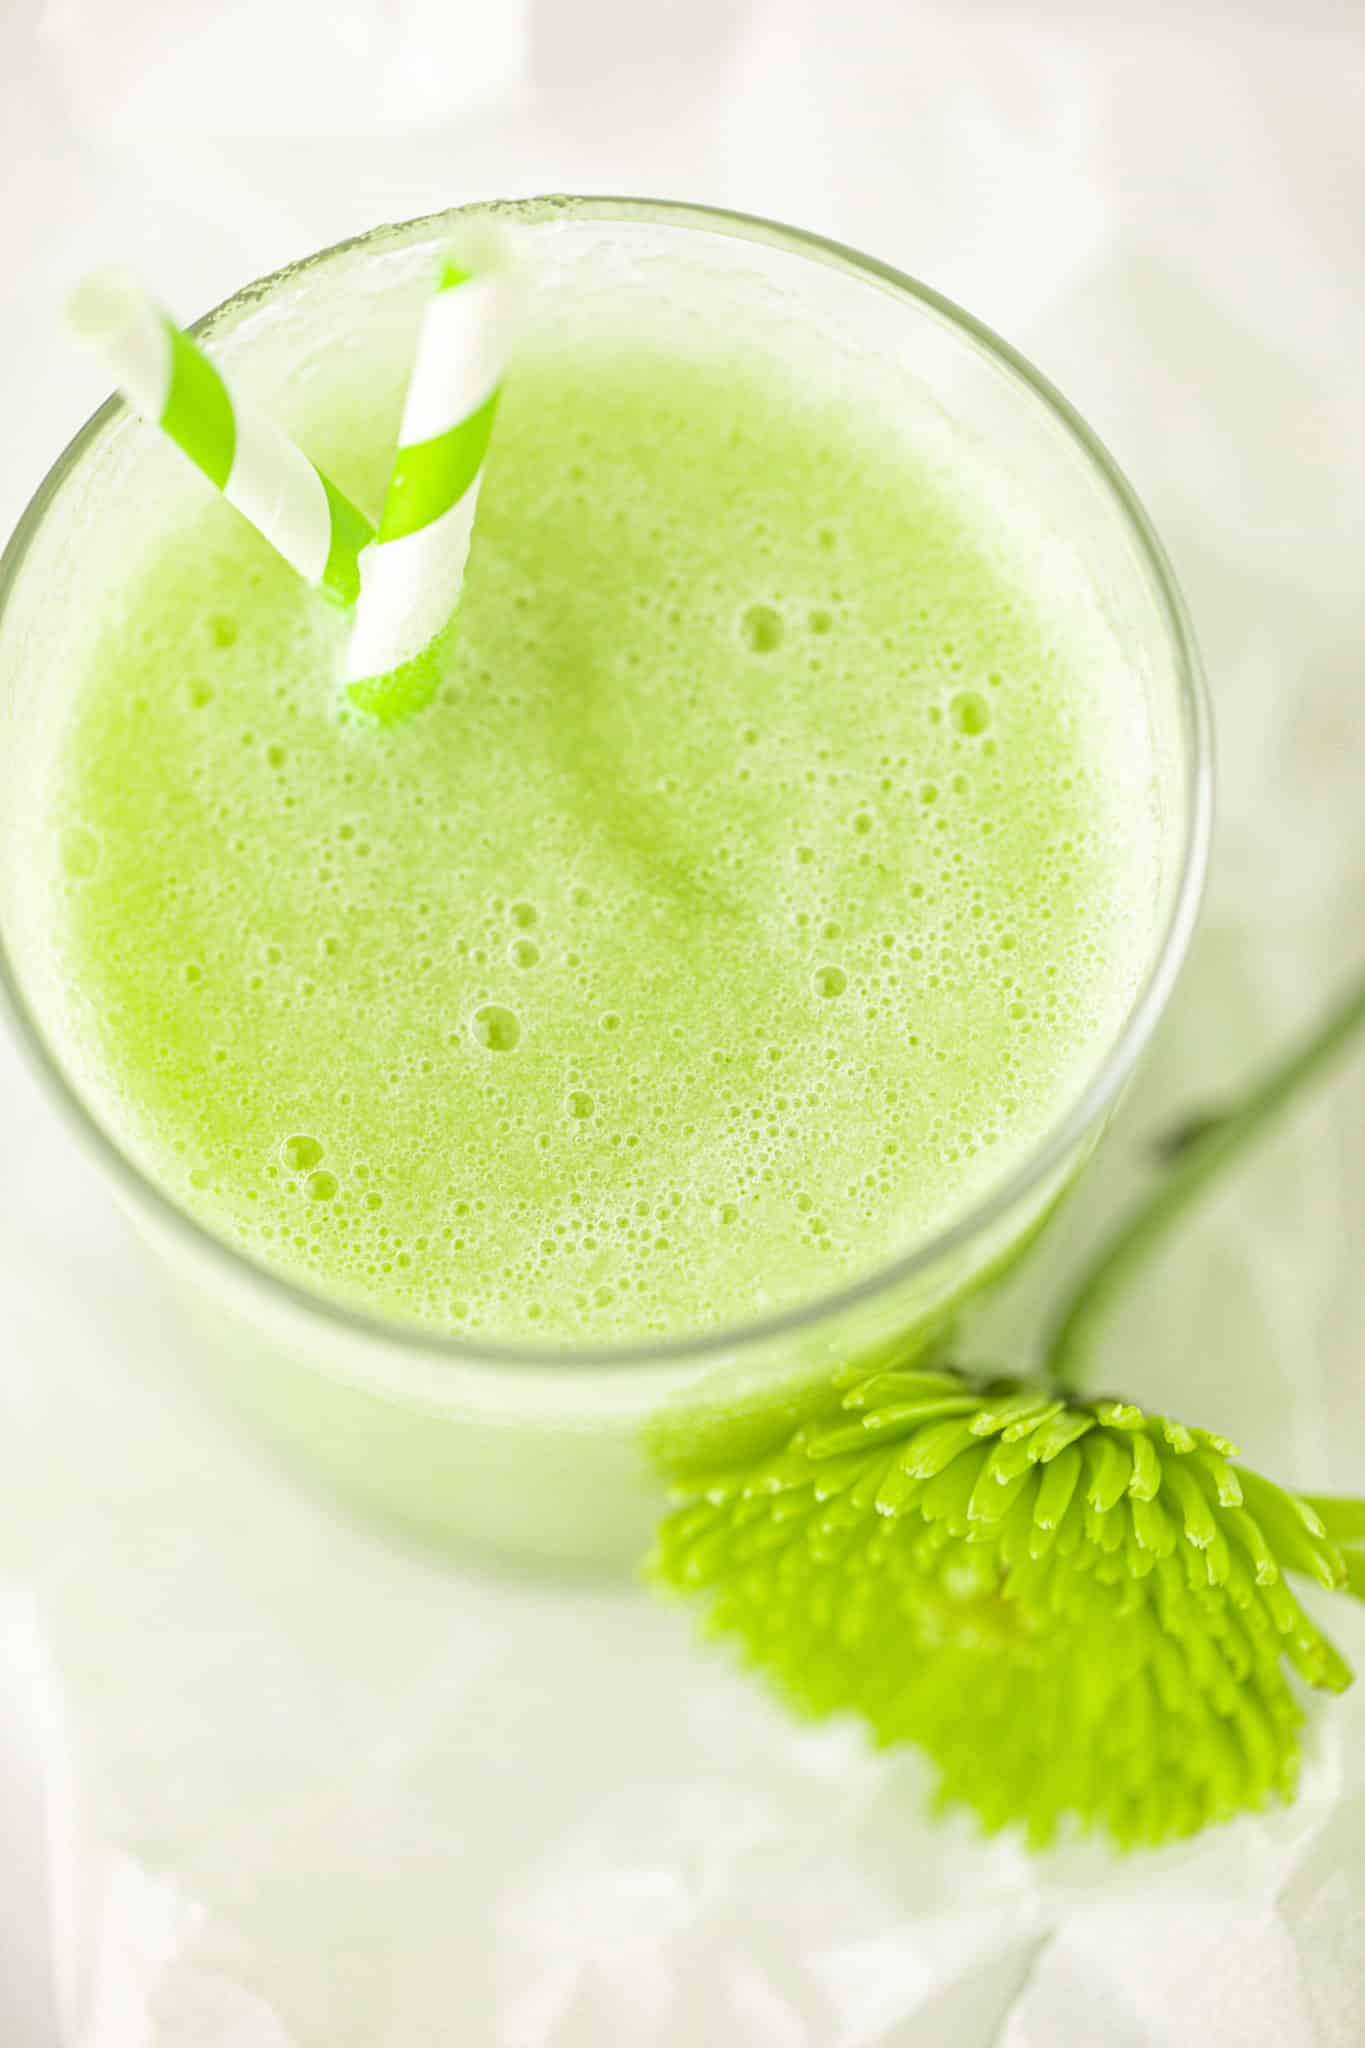 picture with green honeydew melon smoothie in a glass